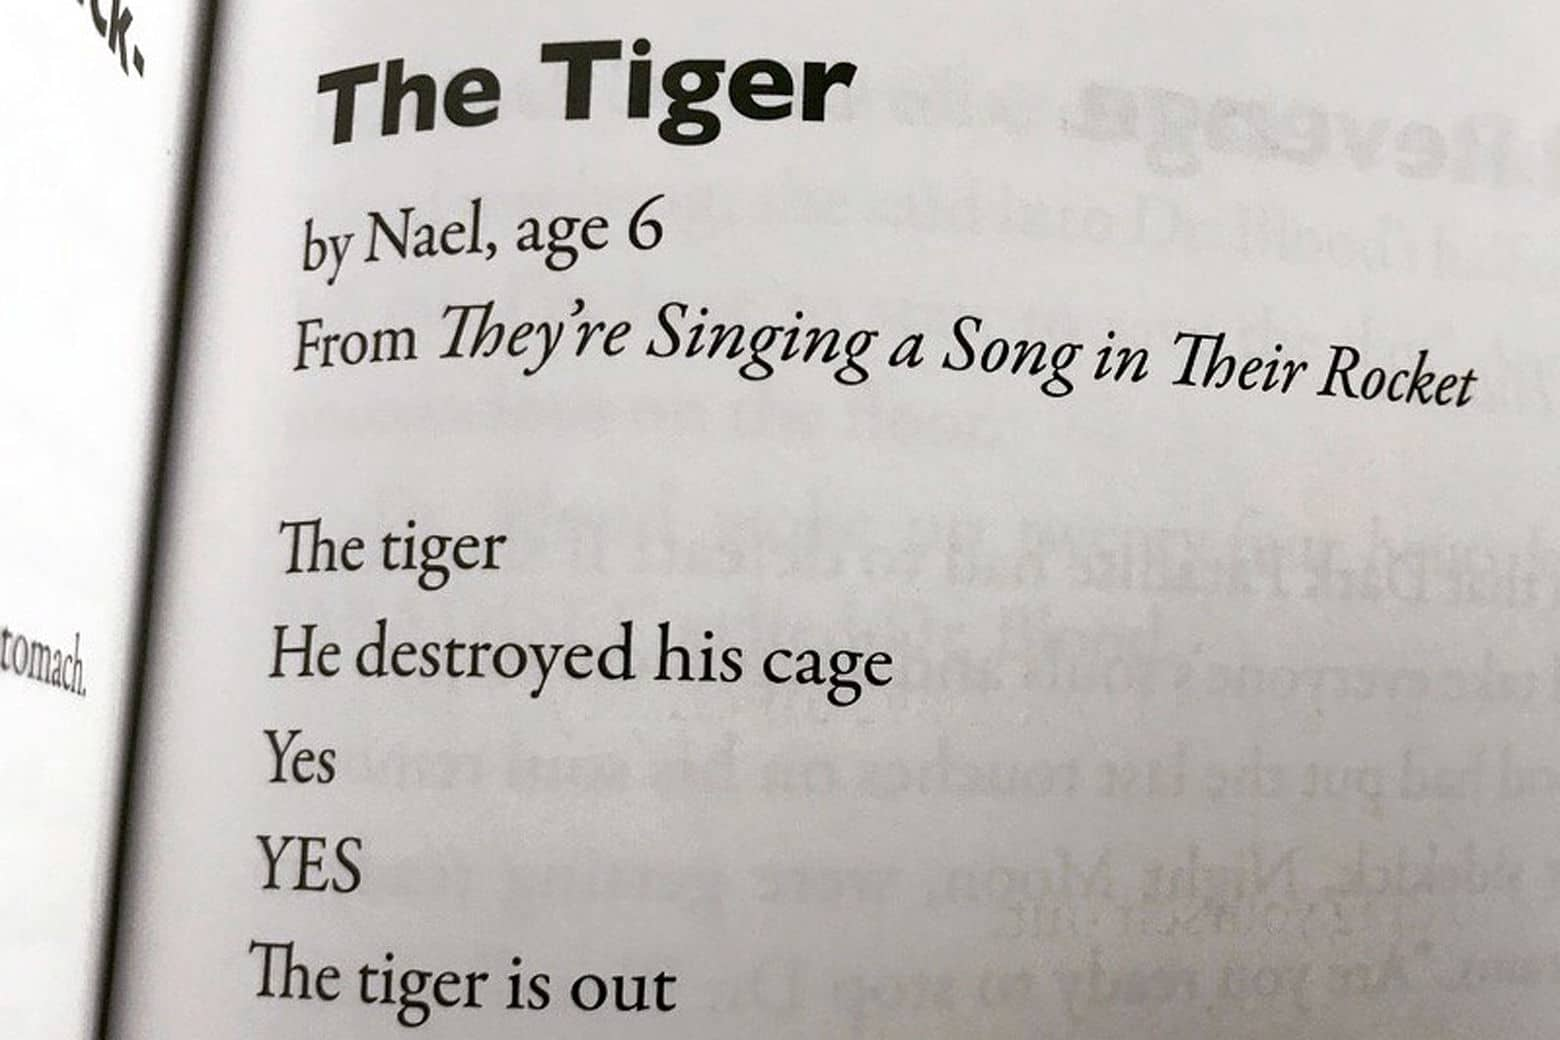 6-year-old's 'Tiger' poem takes Twitter by storm | WTOP